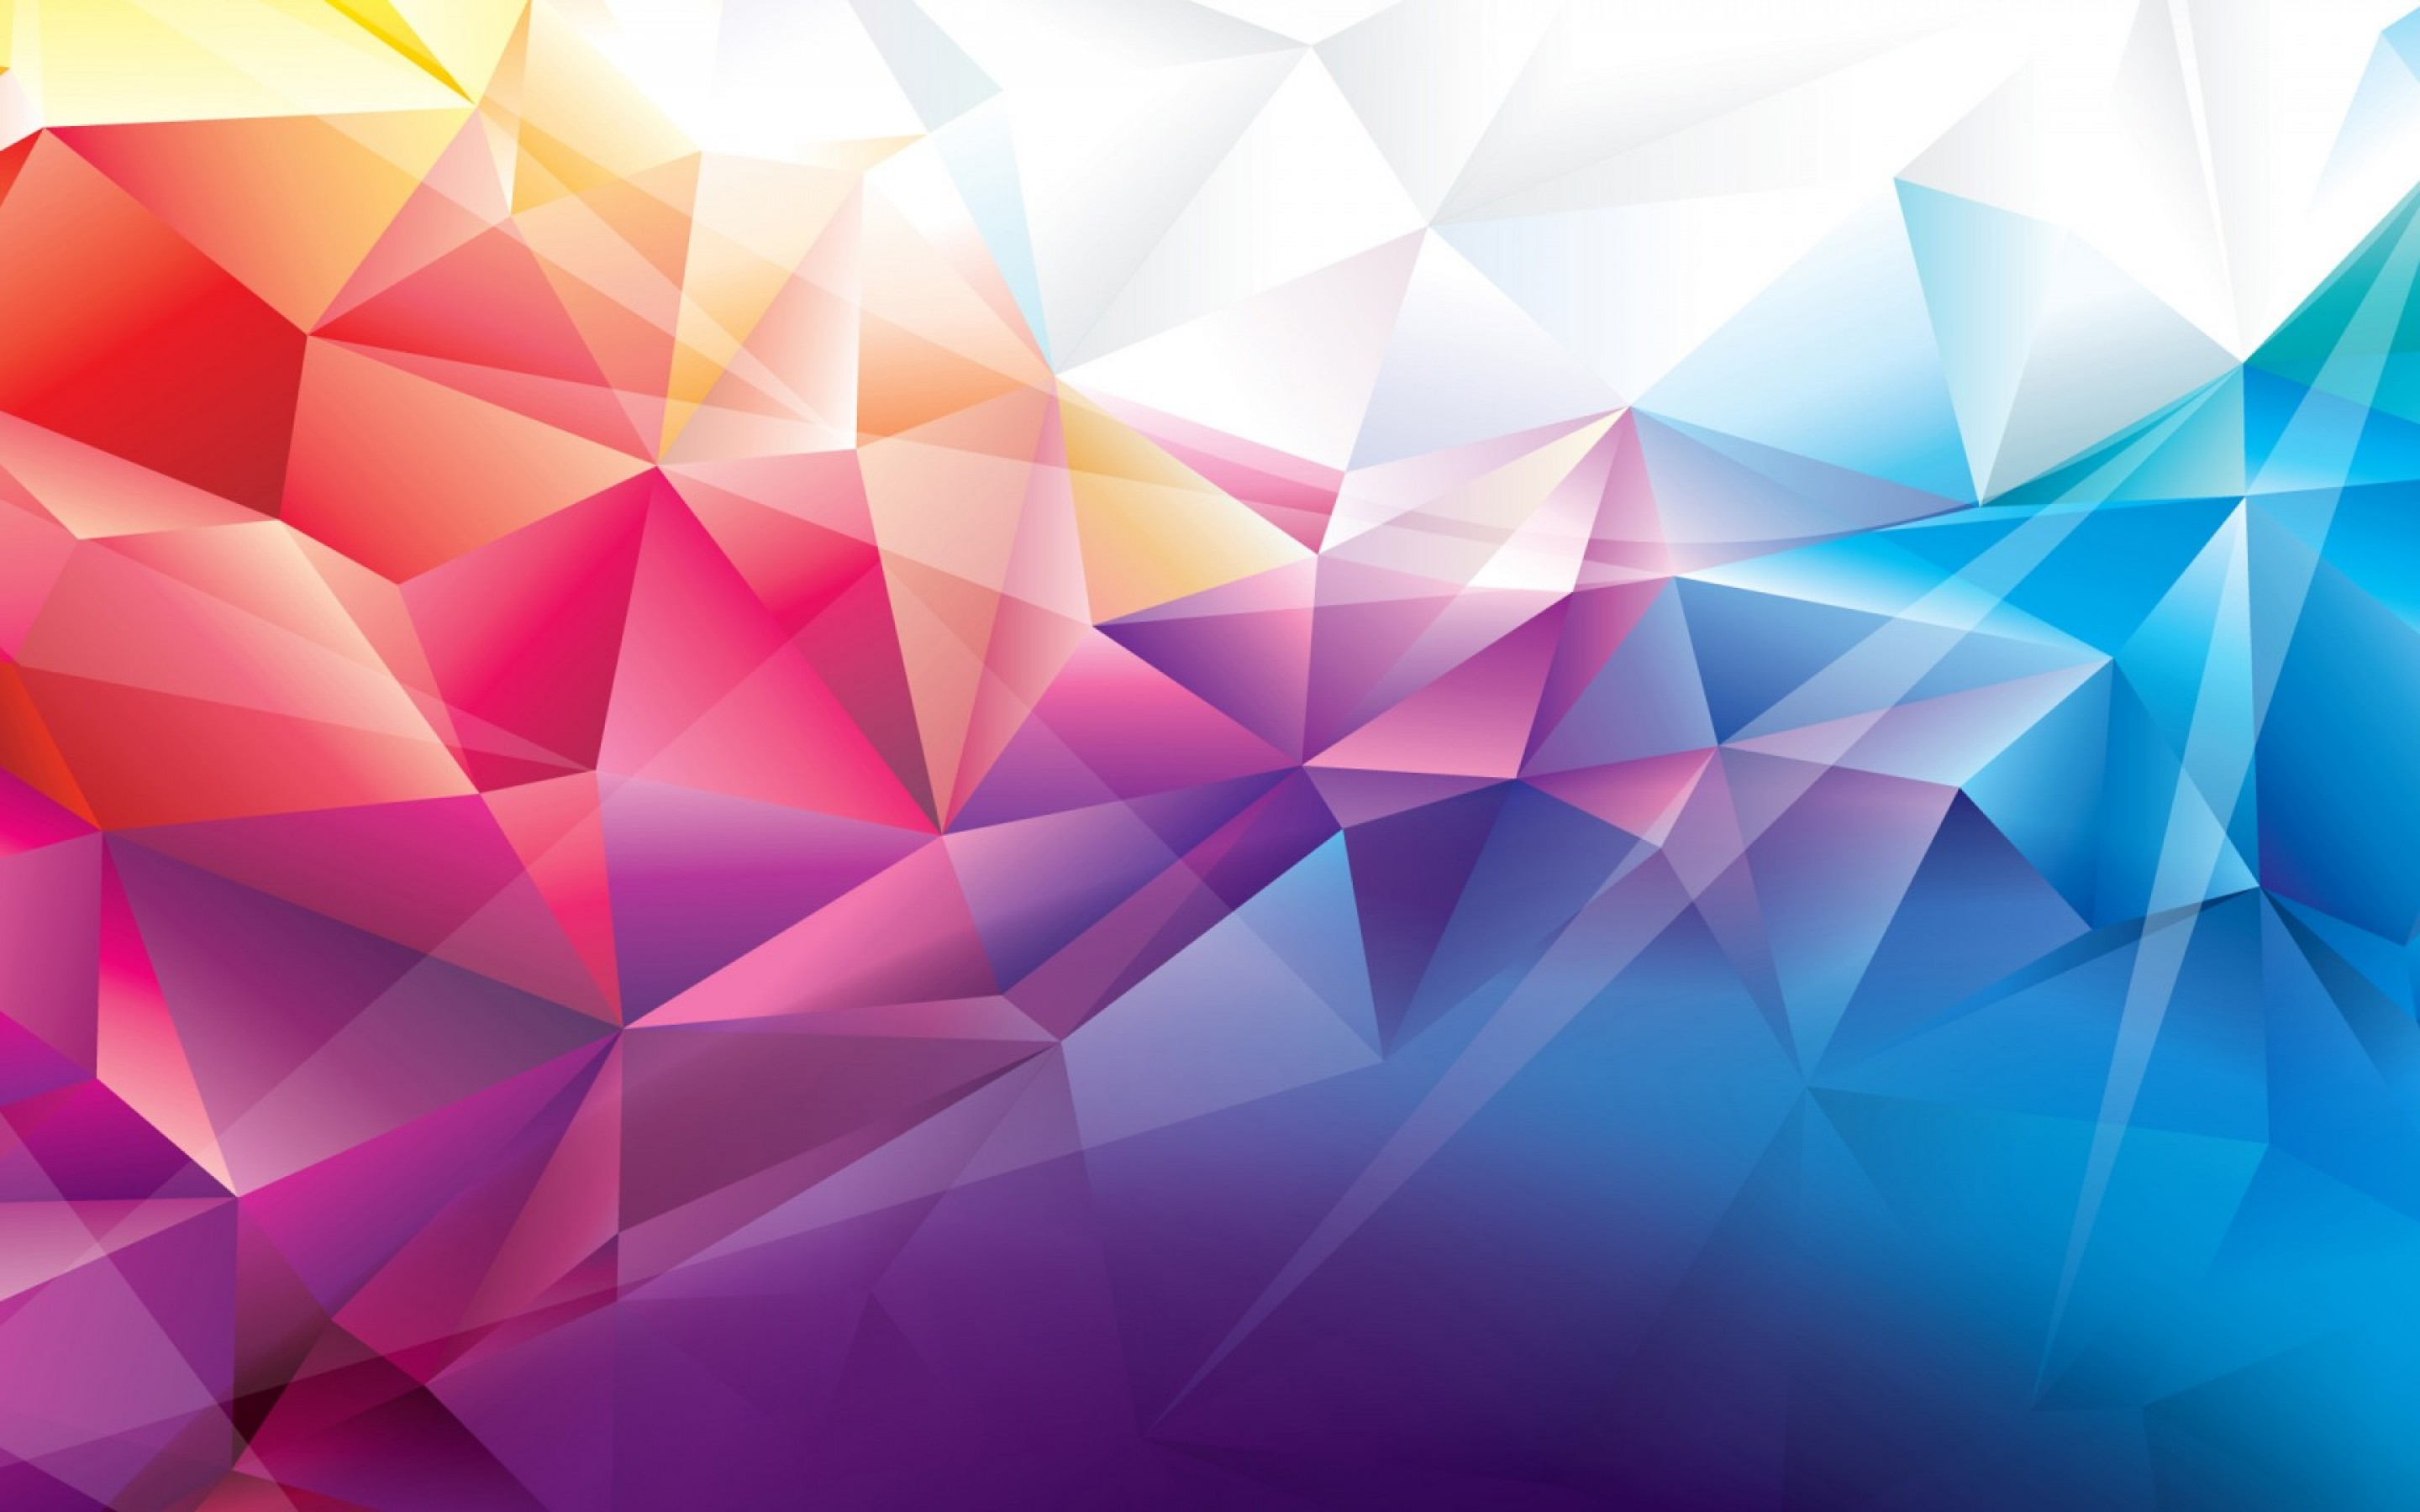 Abstract Best Polygon Hd Wallpaper For Desktop And Mobiles 15